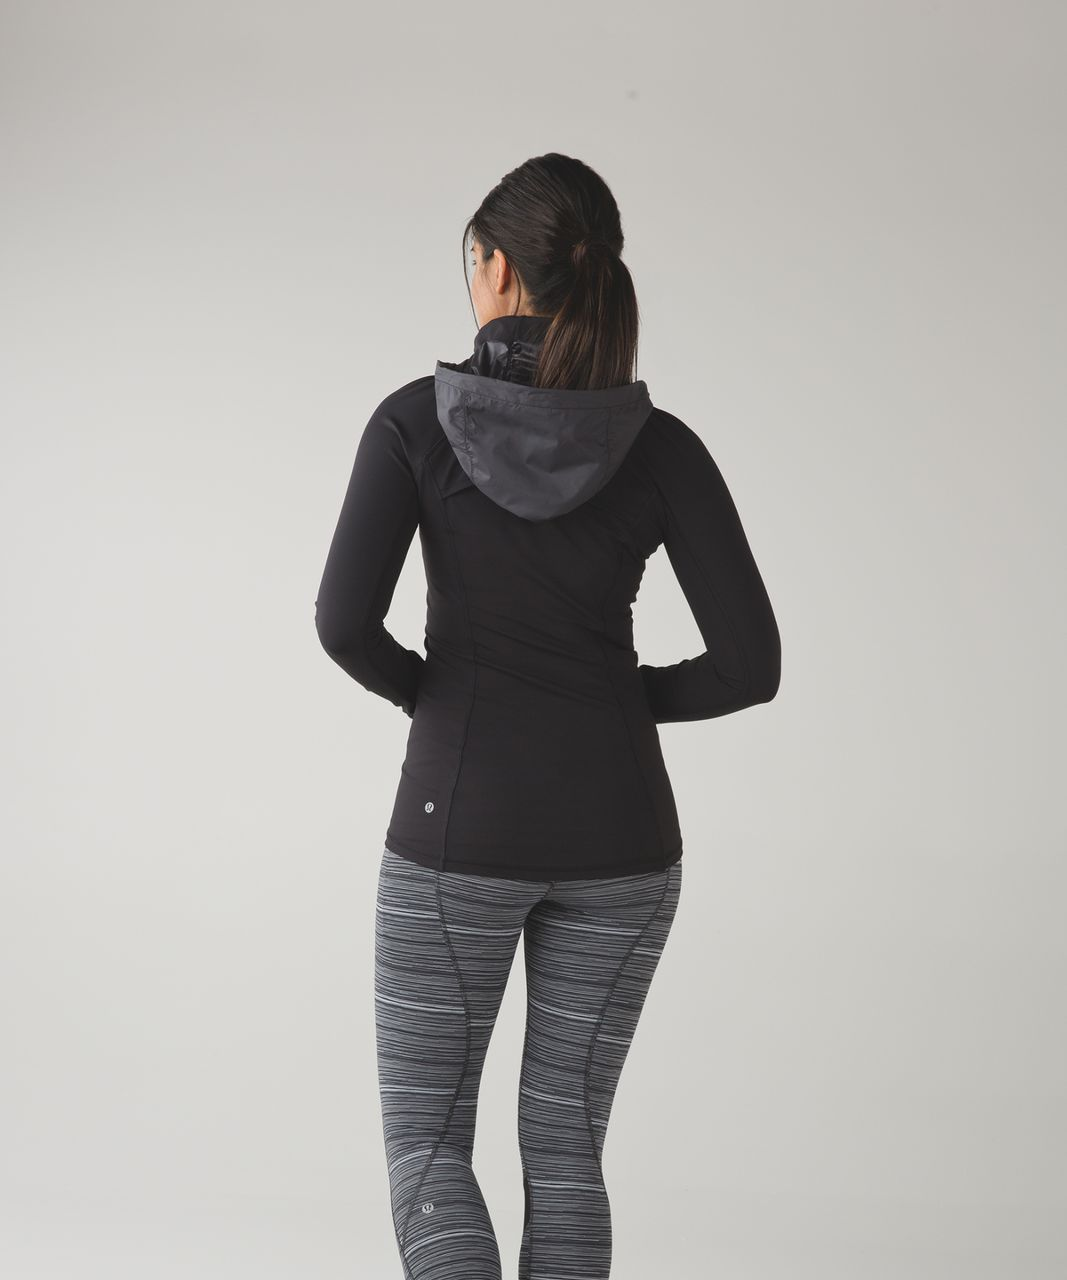 Lululemon Rain-On Train-On Pullover - Black